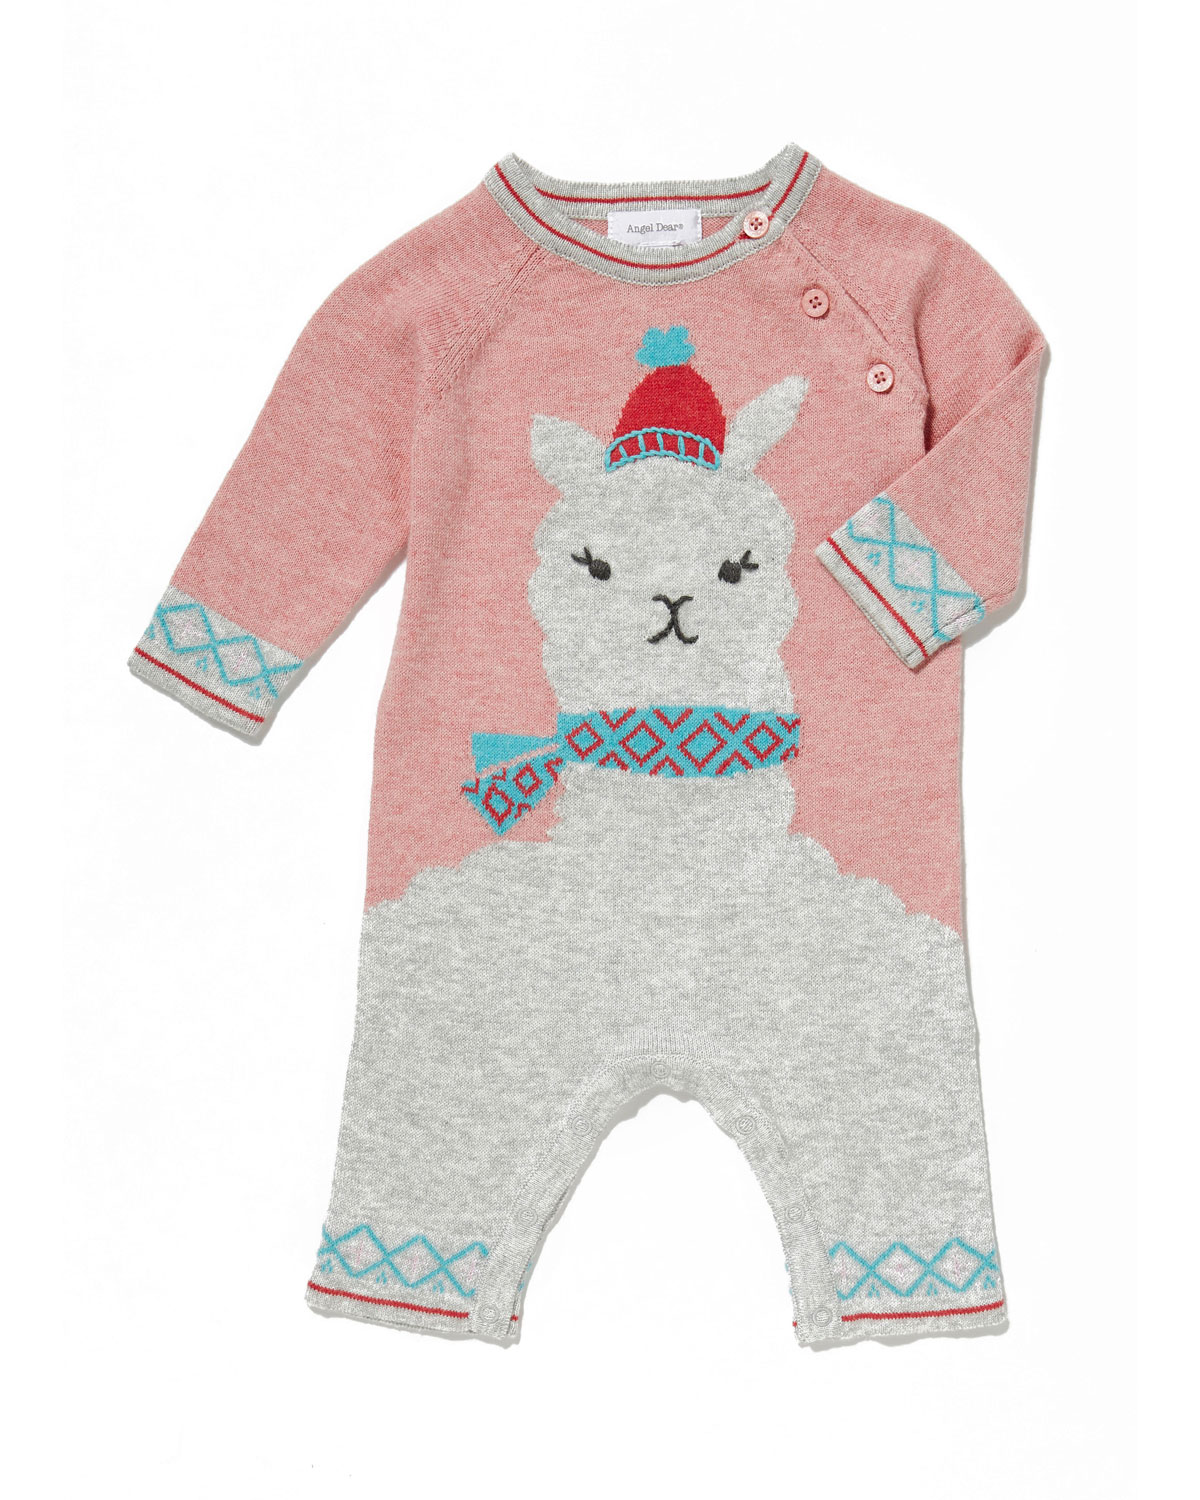 Llama Intarsia Knit Coverall, Size 0-12 Months